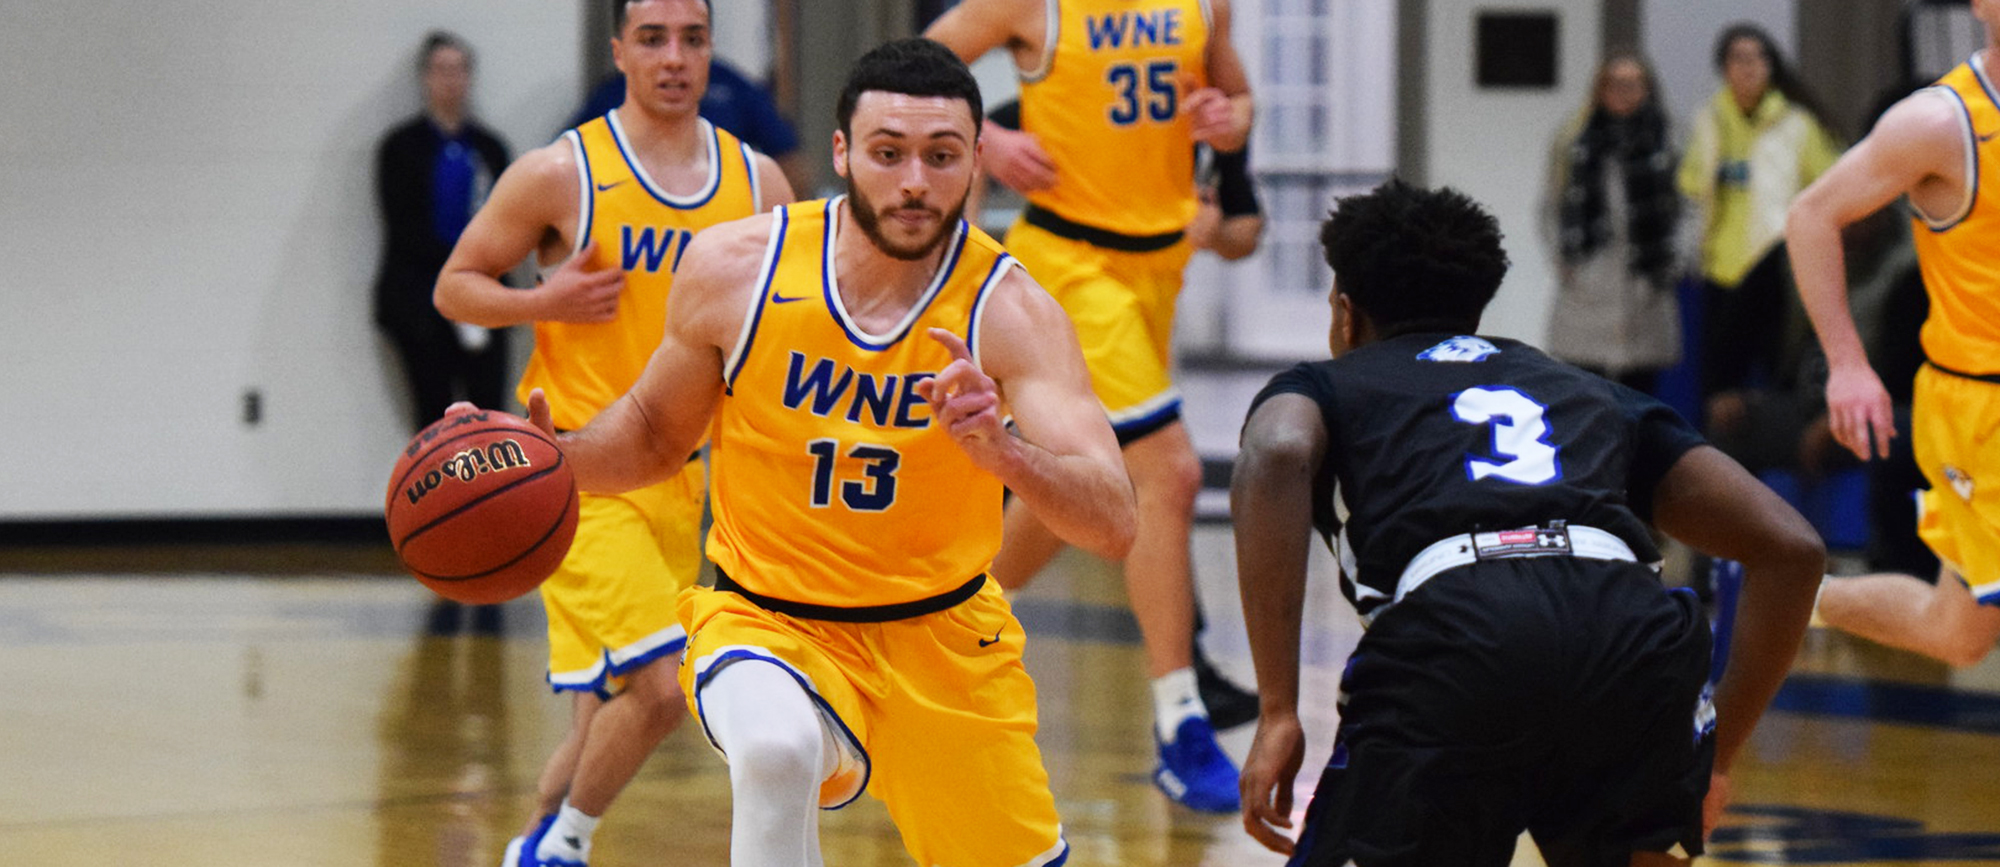 Alex Sikorski finished with 18 points and nine rebounds in Western New England's 79-67 win over Becker on Tuesday night. (Photo by Rachael Margossian)